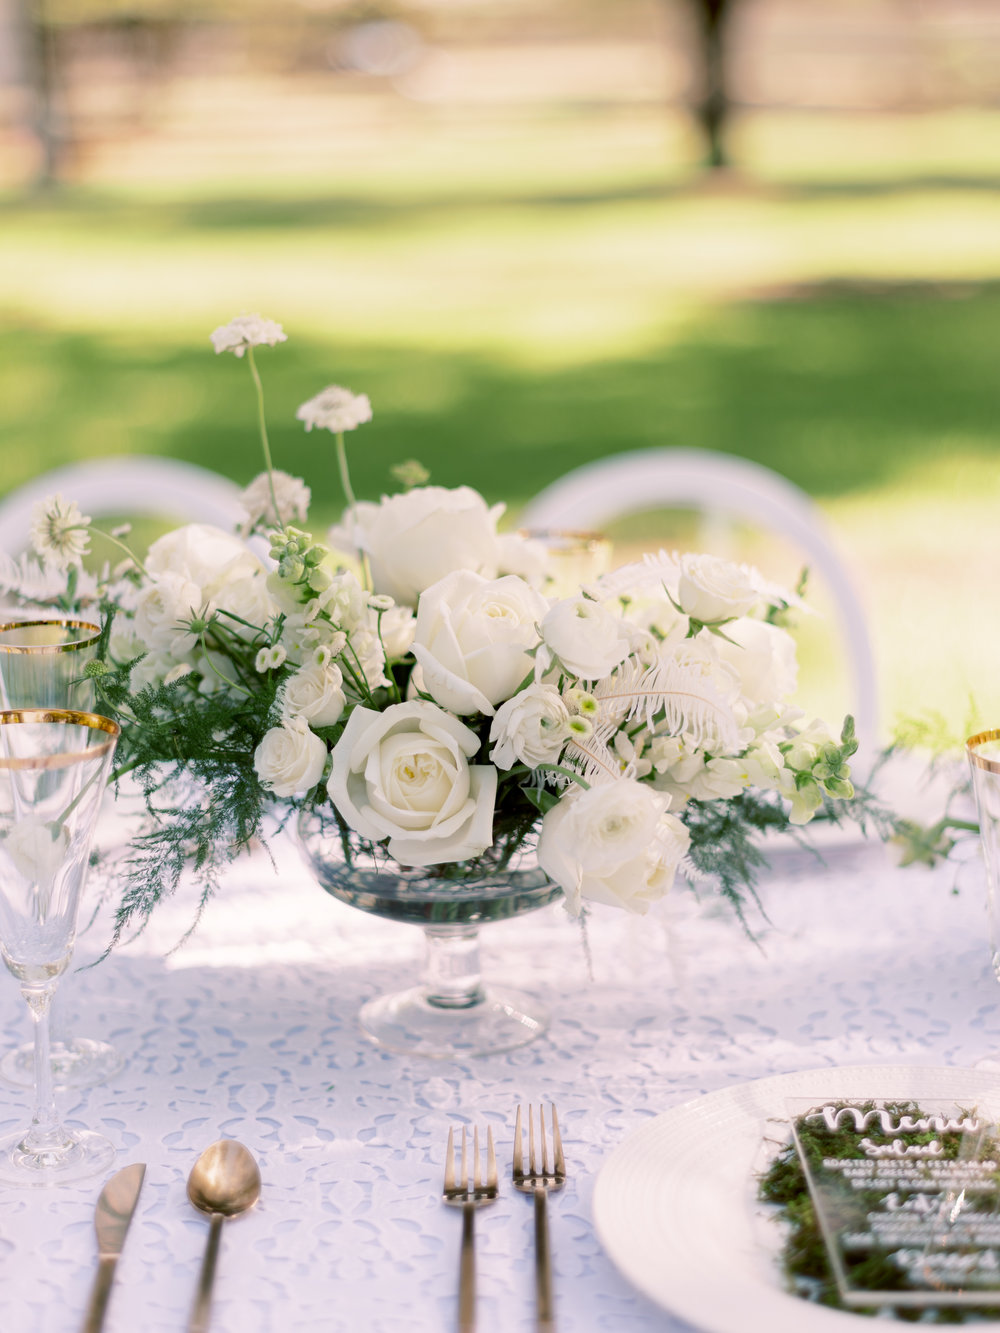 White Wedding at The Farm at South Mountain - Centerpiece